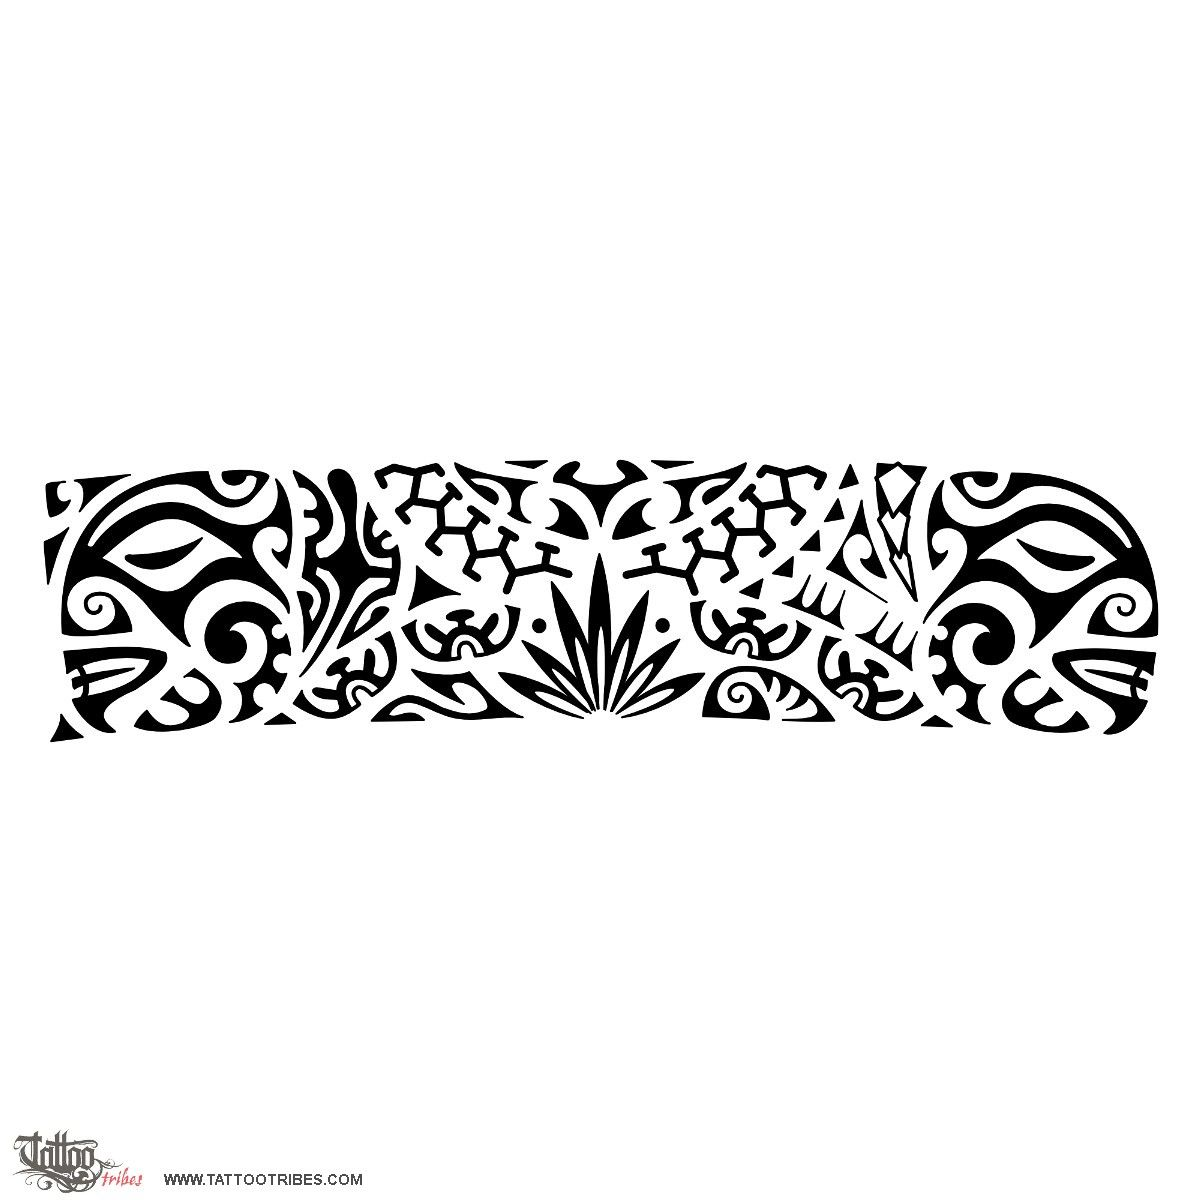 Maori Band Tattoo Design: Family And Friends This Armband Tattoo About The